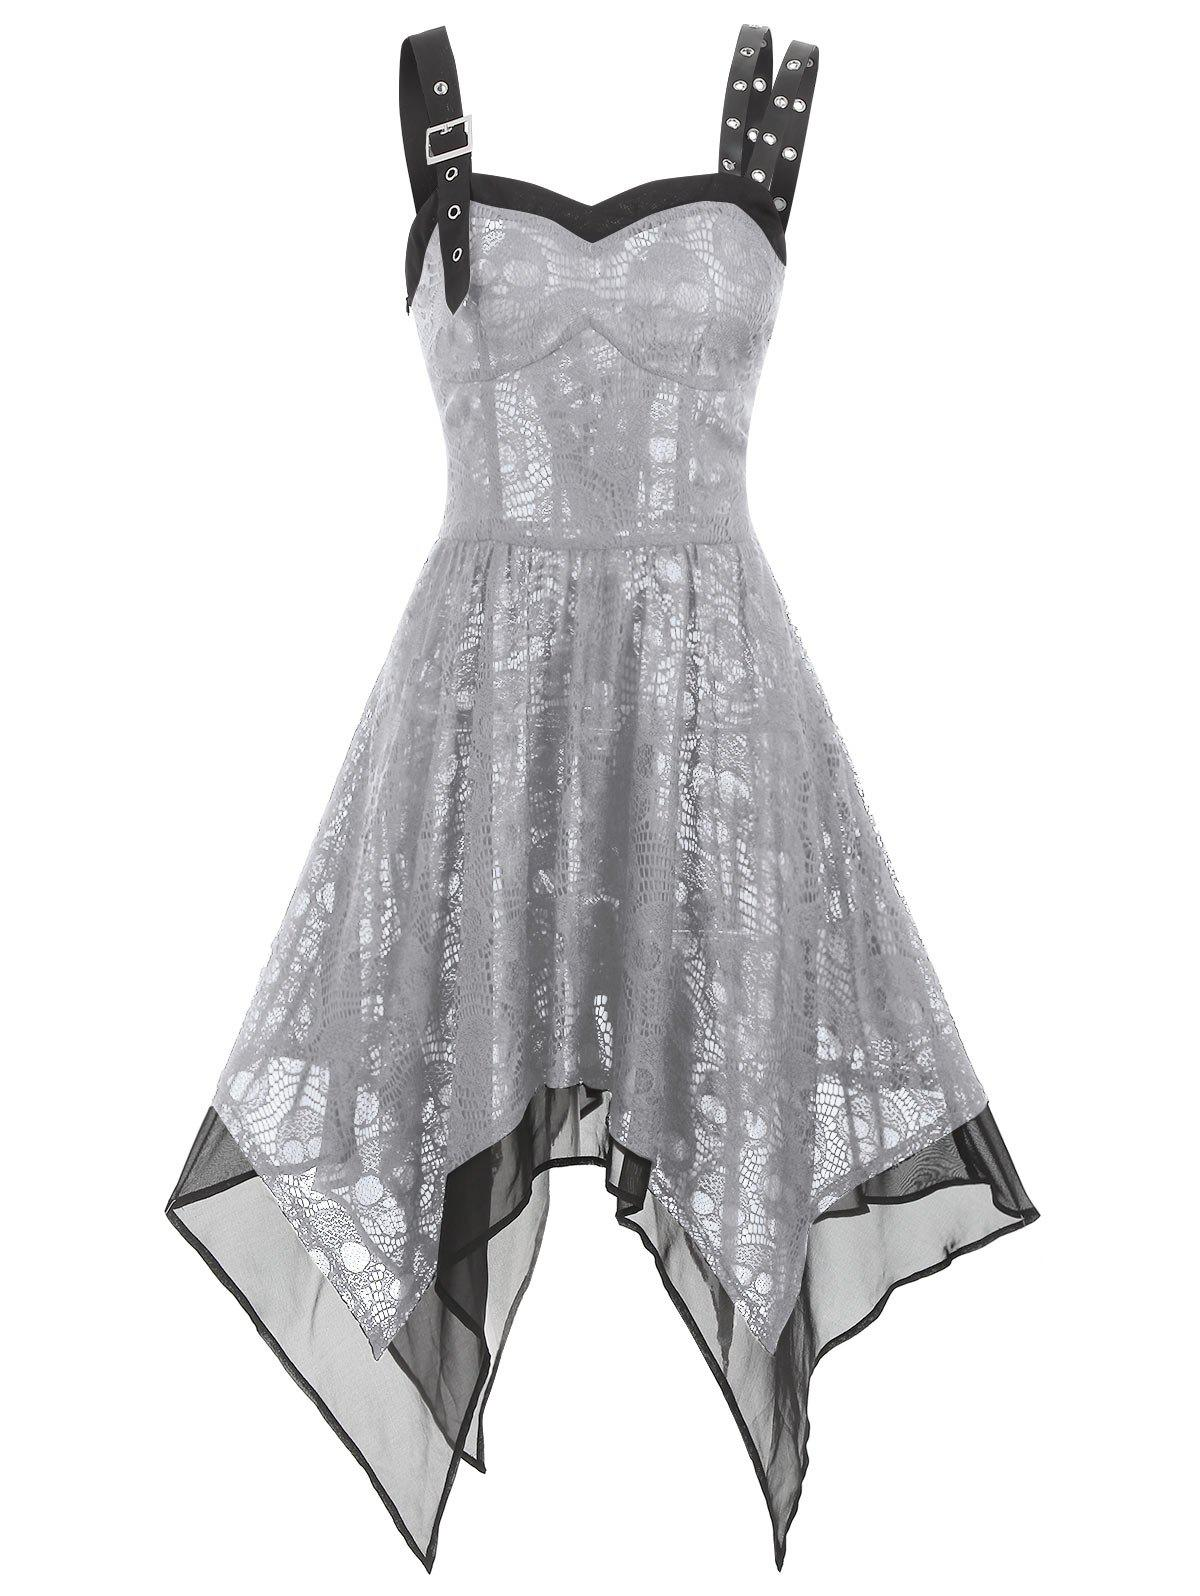 Asymmetrical Lace Buckle Grommet Strap Handkerchief Lace Up Dress - GRAY CLOUD XL